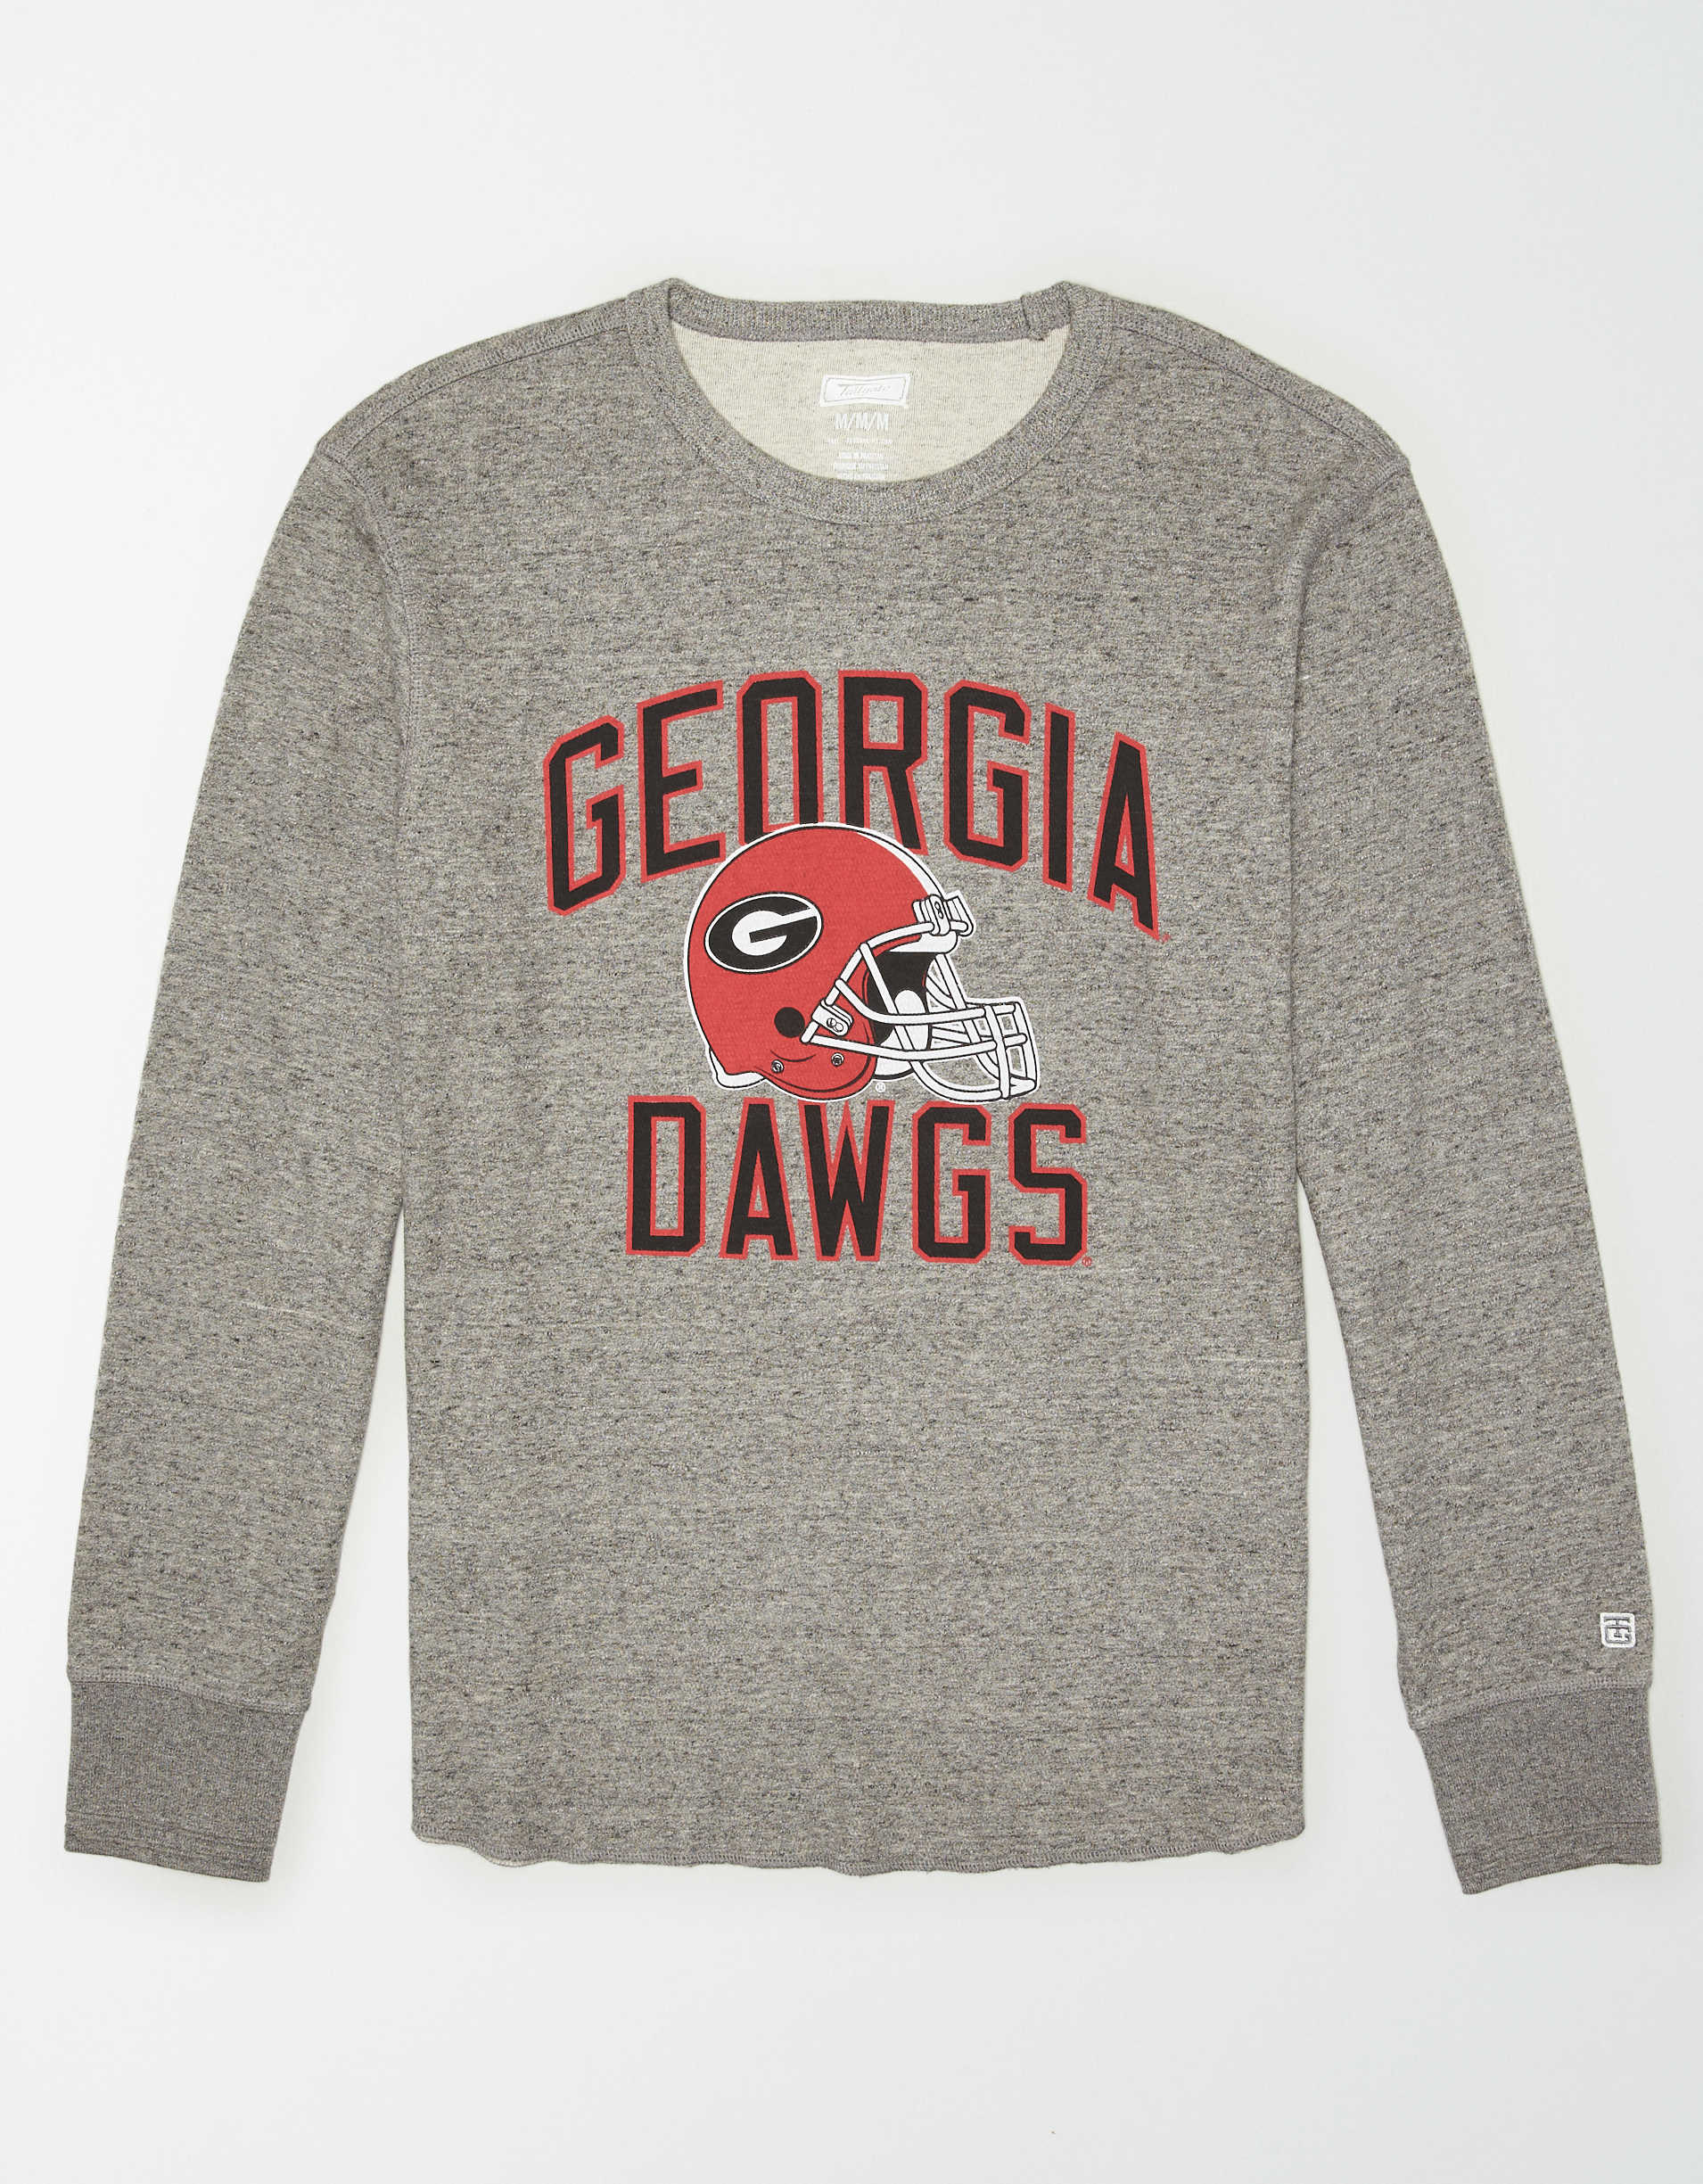 Tailgate Men's Georgia Bulldogs Thermal Shirt